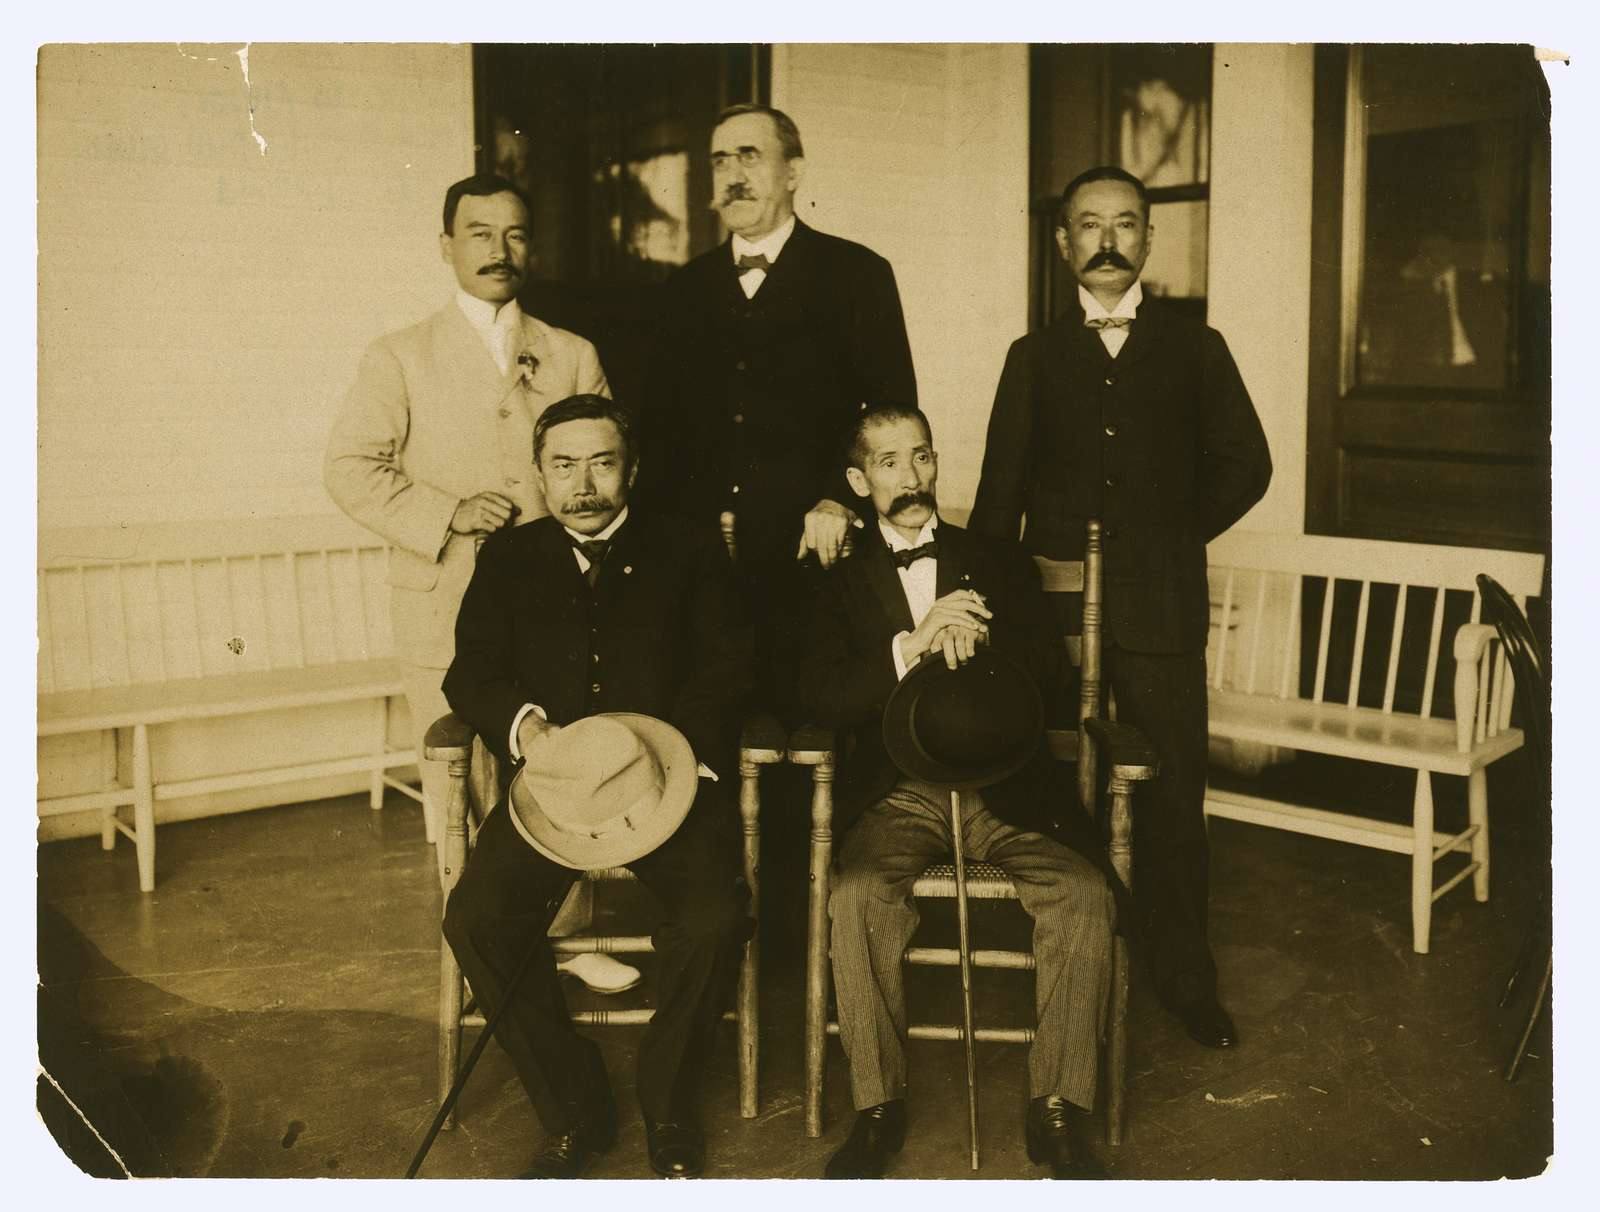 [Japanese envoys Kogoro Takhira (seated, left), Jutarō Komura (seated, right) with two staff members and H.W. Dennison, the American advisor to the Japanese delegation, full-length portrait facing front]